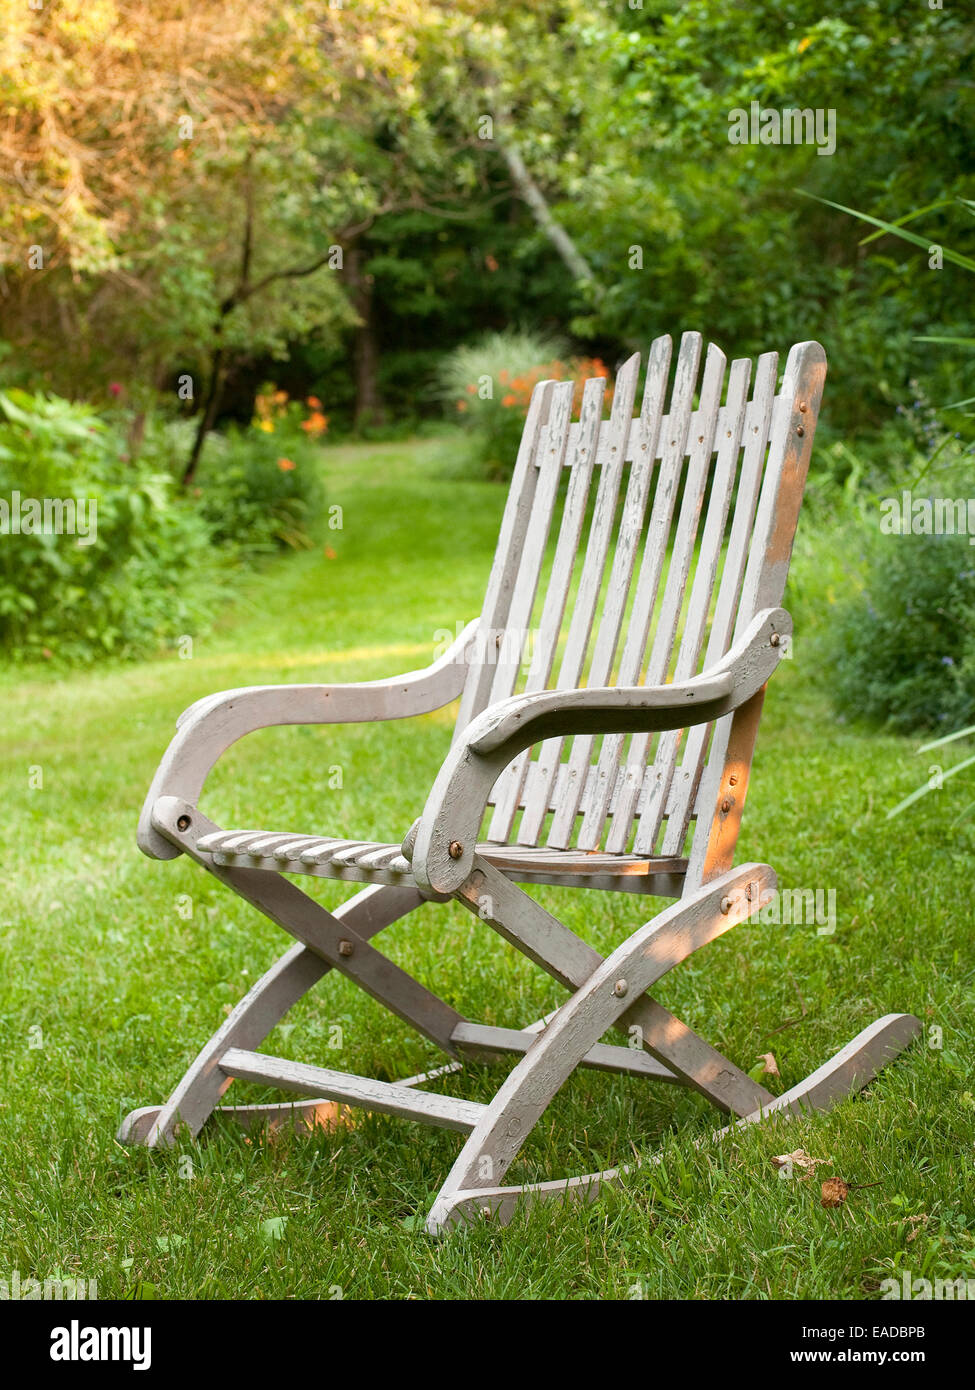 antique wooden rocking chair on lawn and country lane - Stock Image